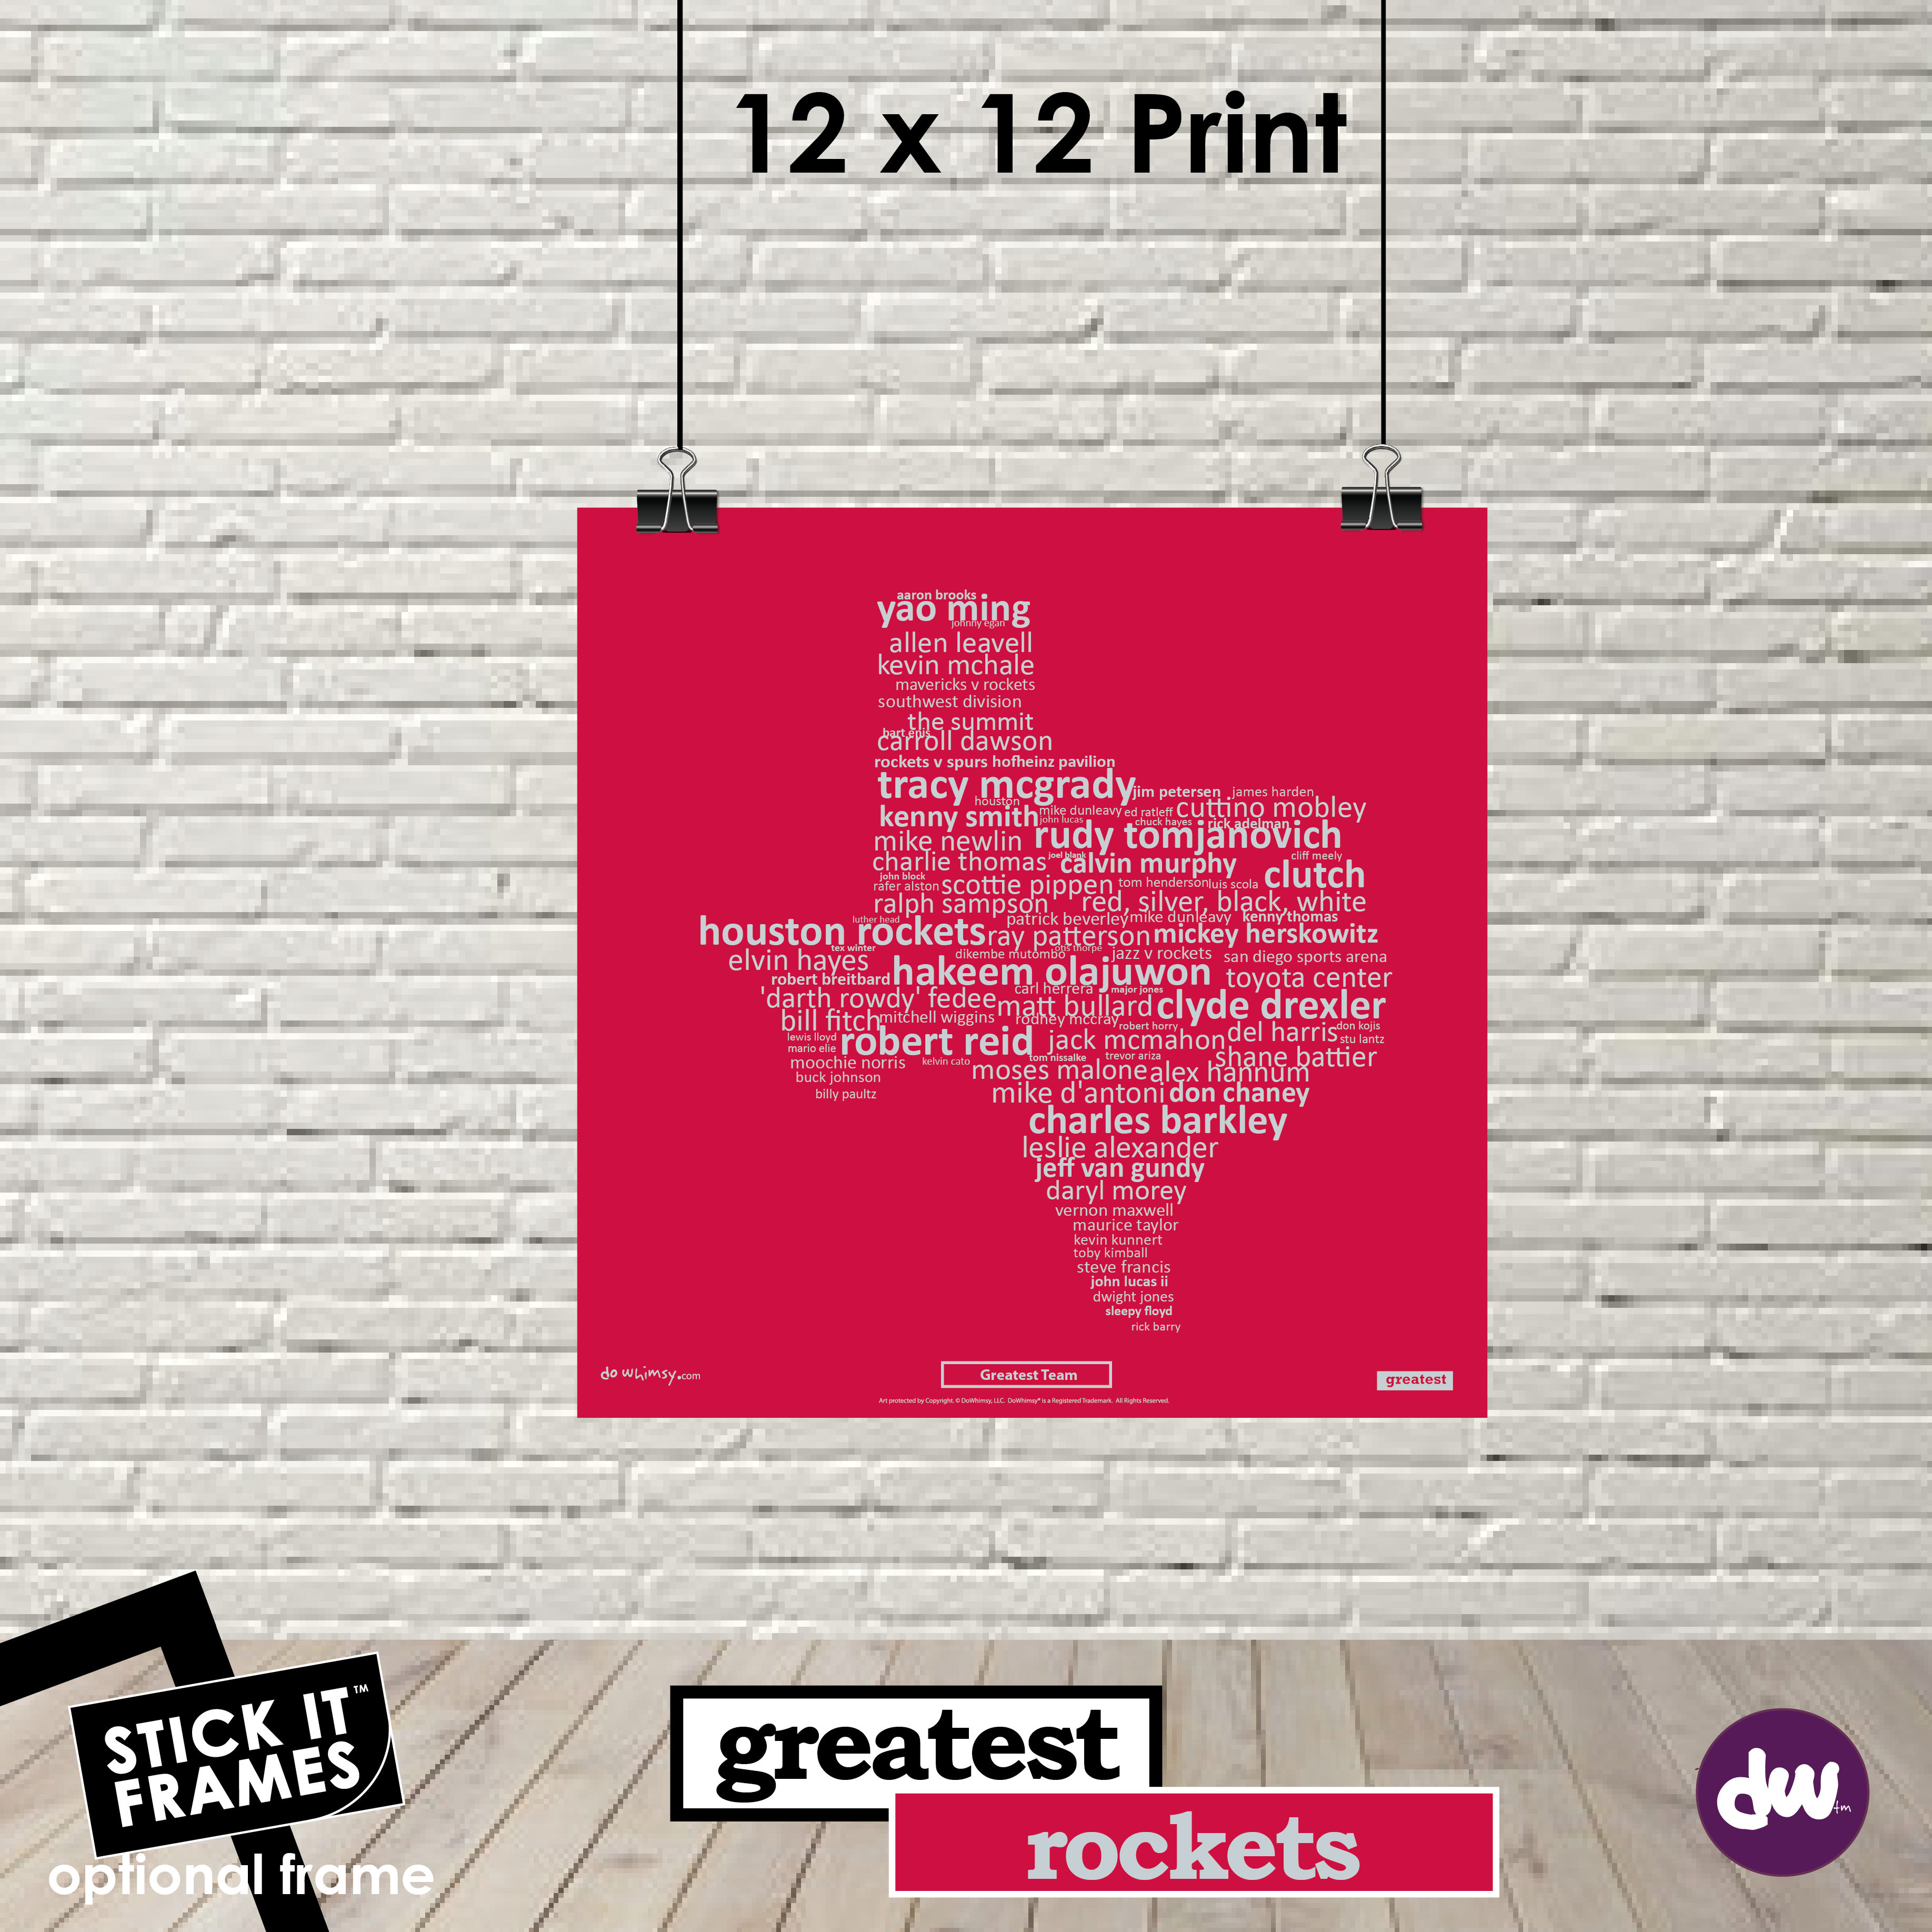 Greatest Texas (Rockets) - All Products (Shirt, Art, Frames (R))